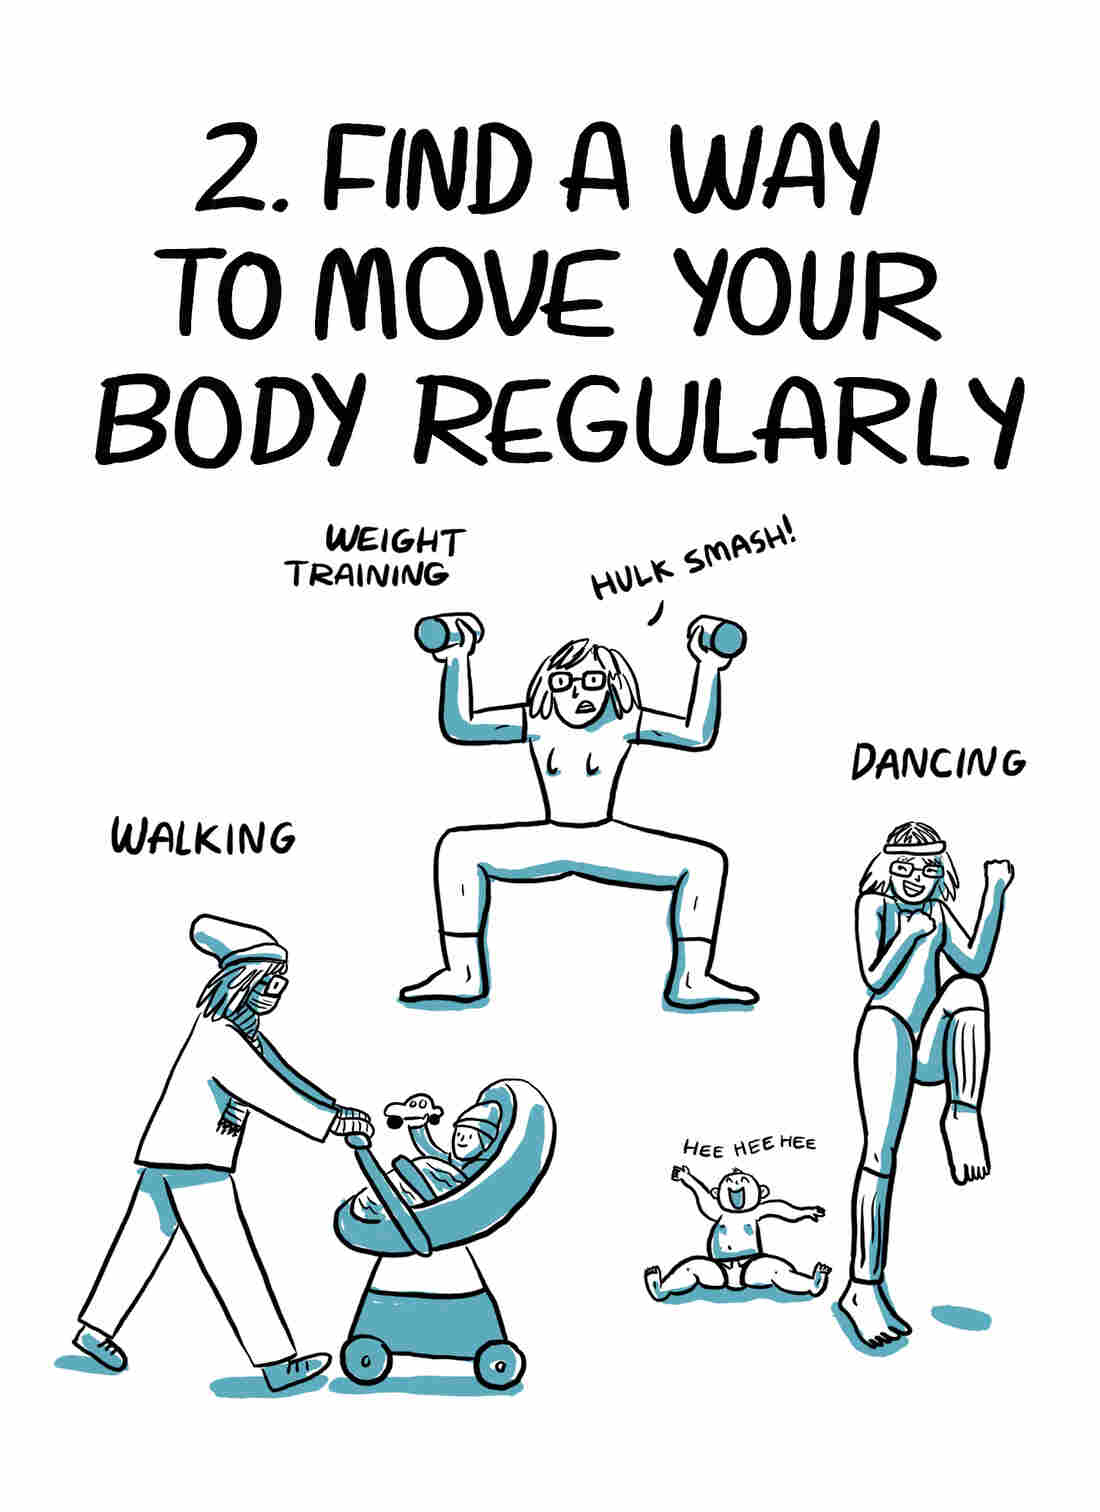 2. Find a way to move your body regularly.